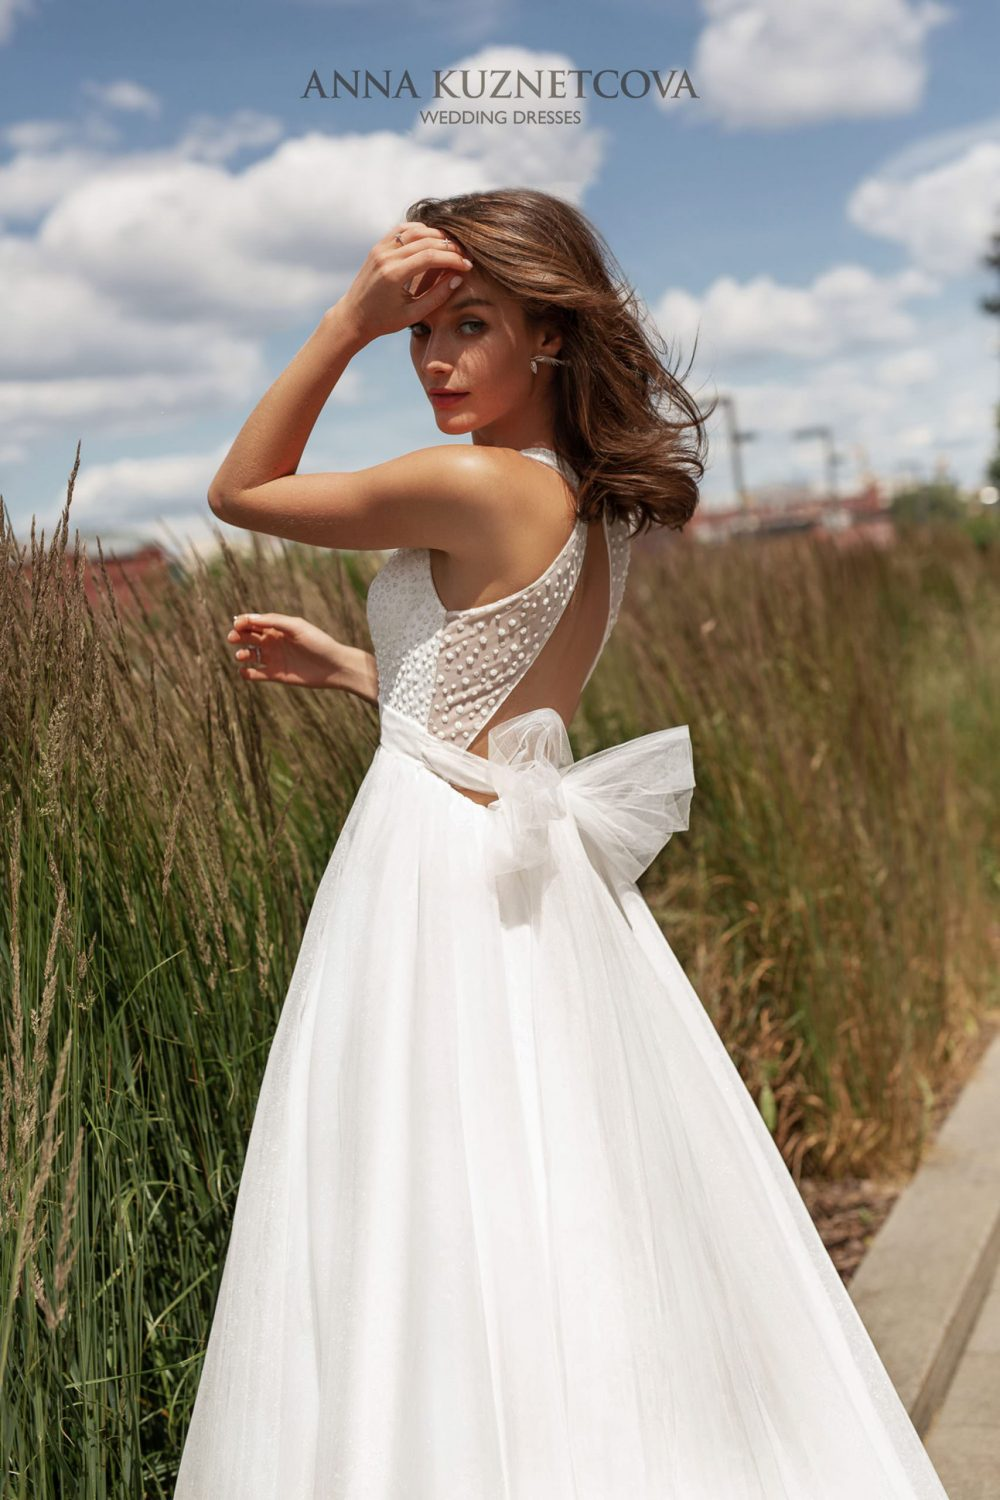 Wedding dress Anna Kuznetcova Kolett